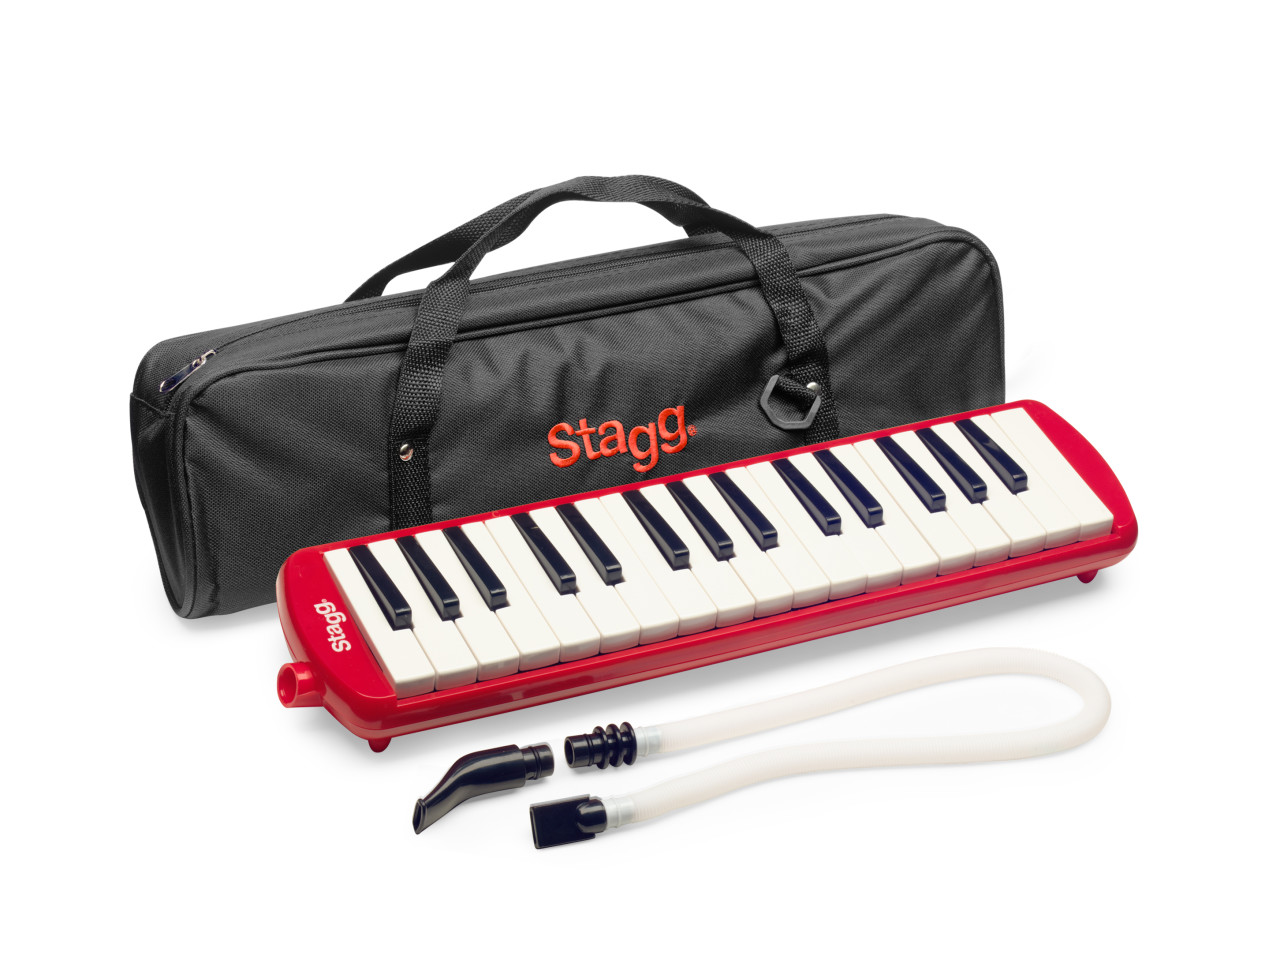 Red plastic melodica with 32 keys and black and red bag